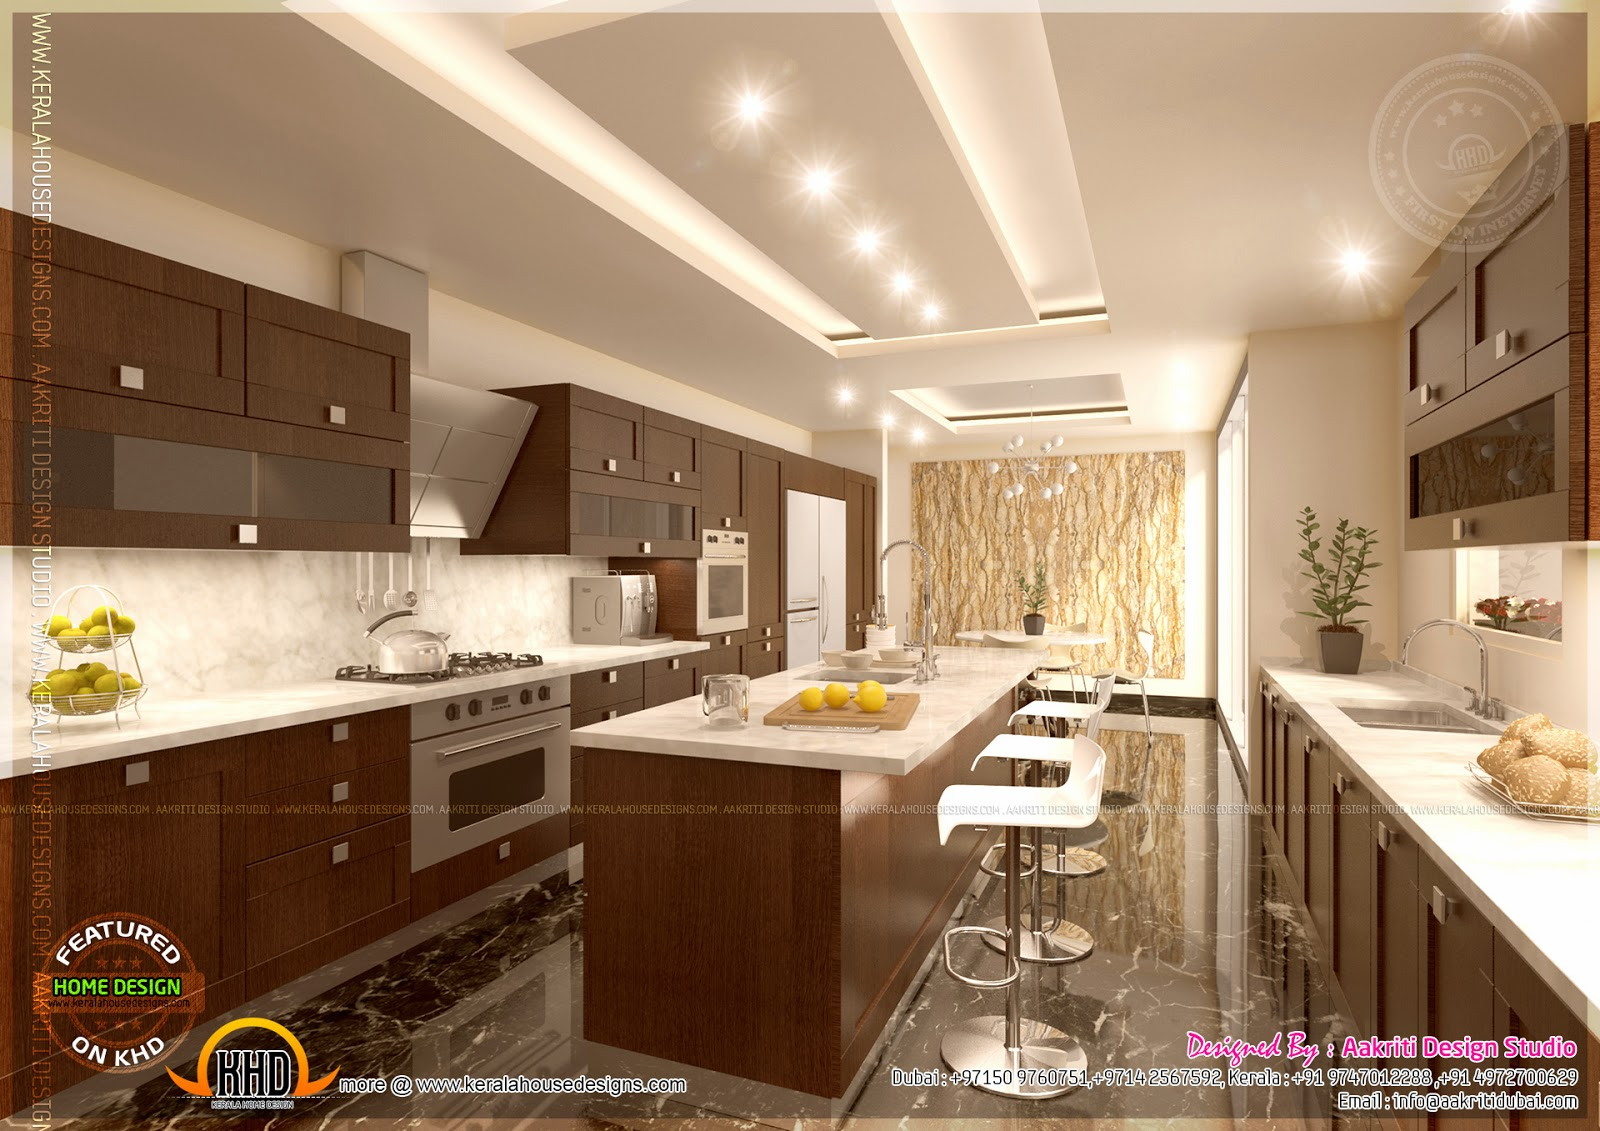 Kitchen Designs By Aakriti Design Studio Kerala Home Design And Floor Plans